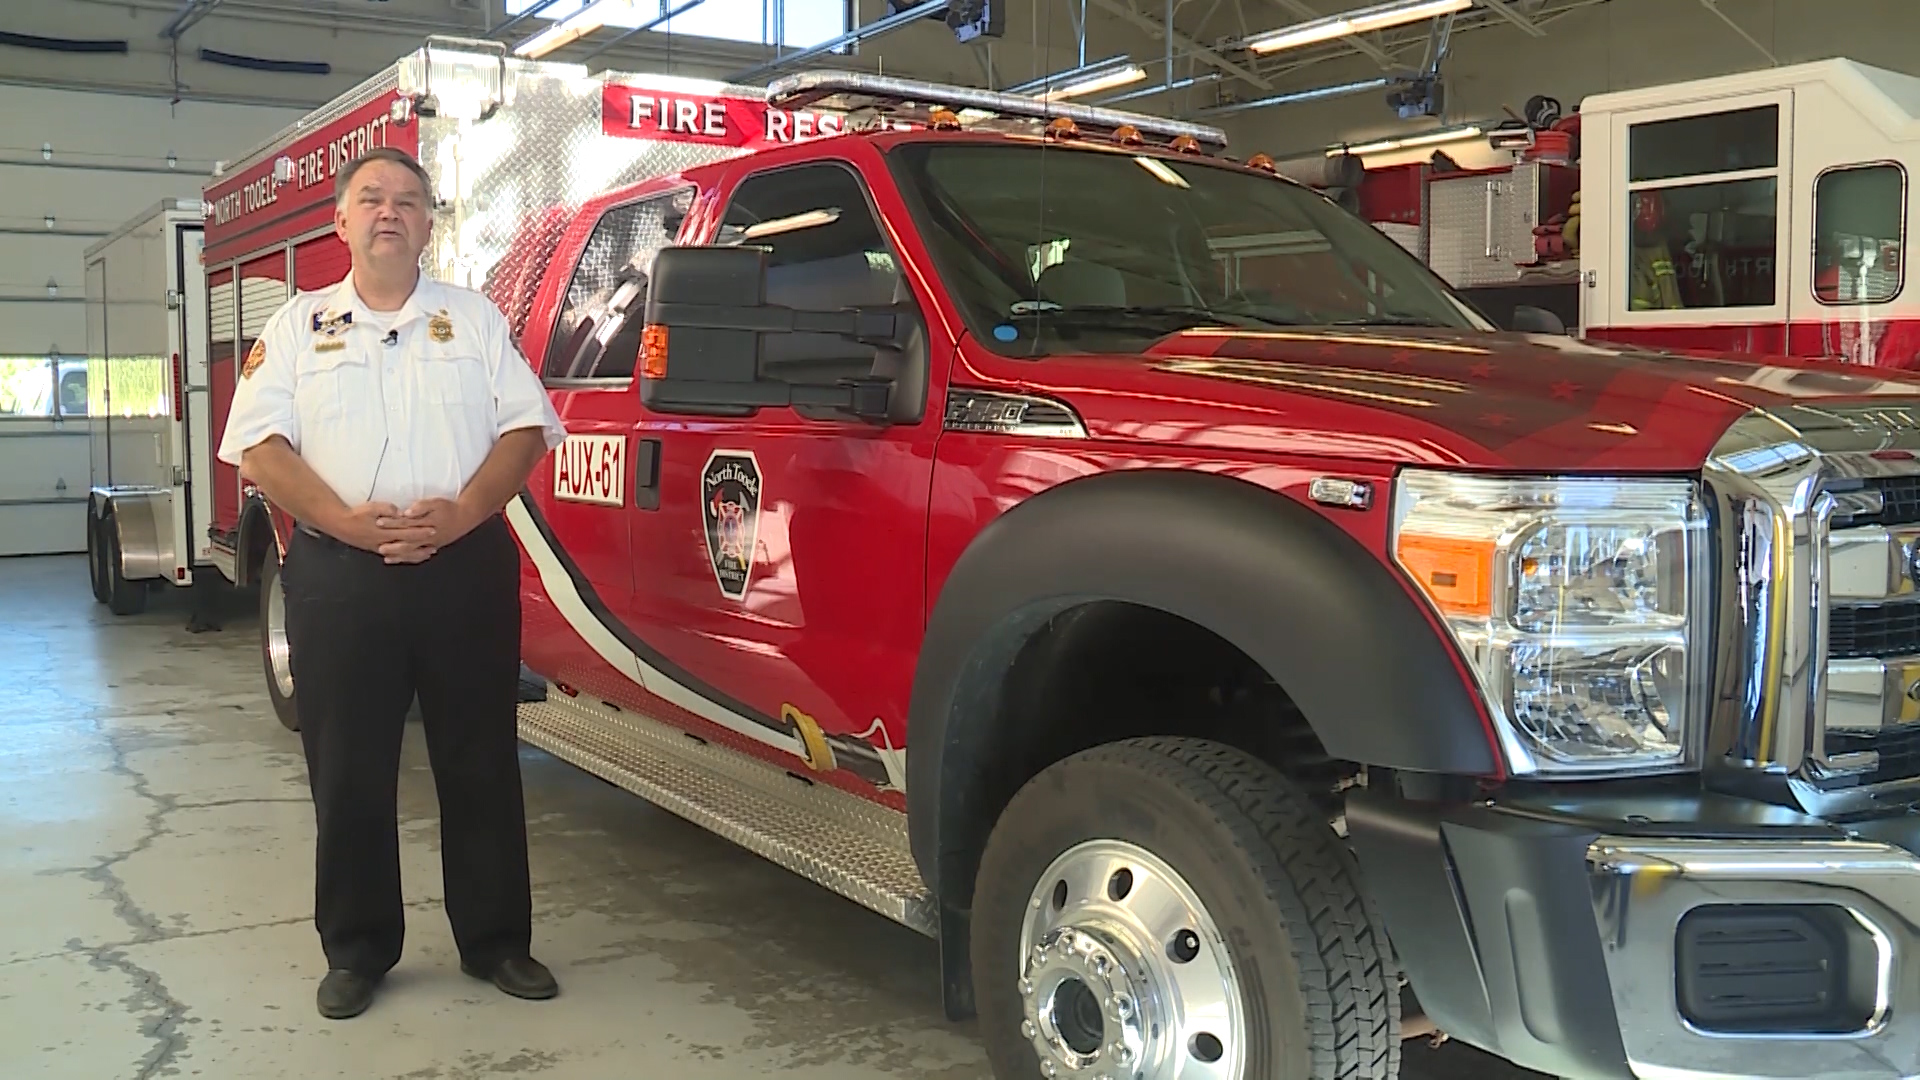 N. Tooele Fire enacts changes to improve overnight response